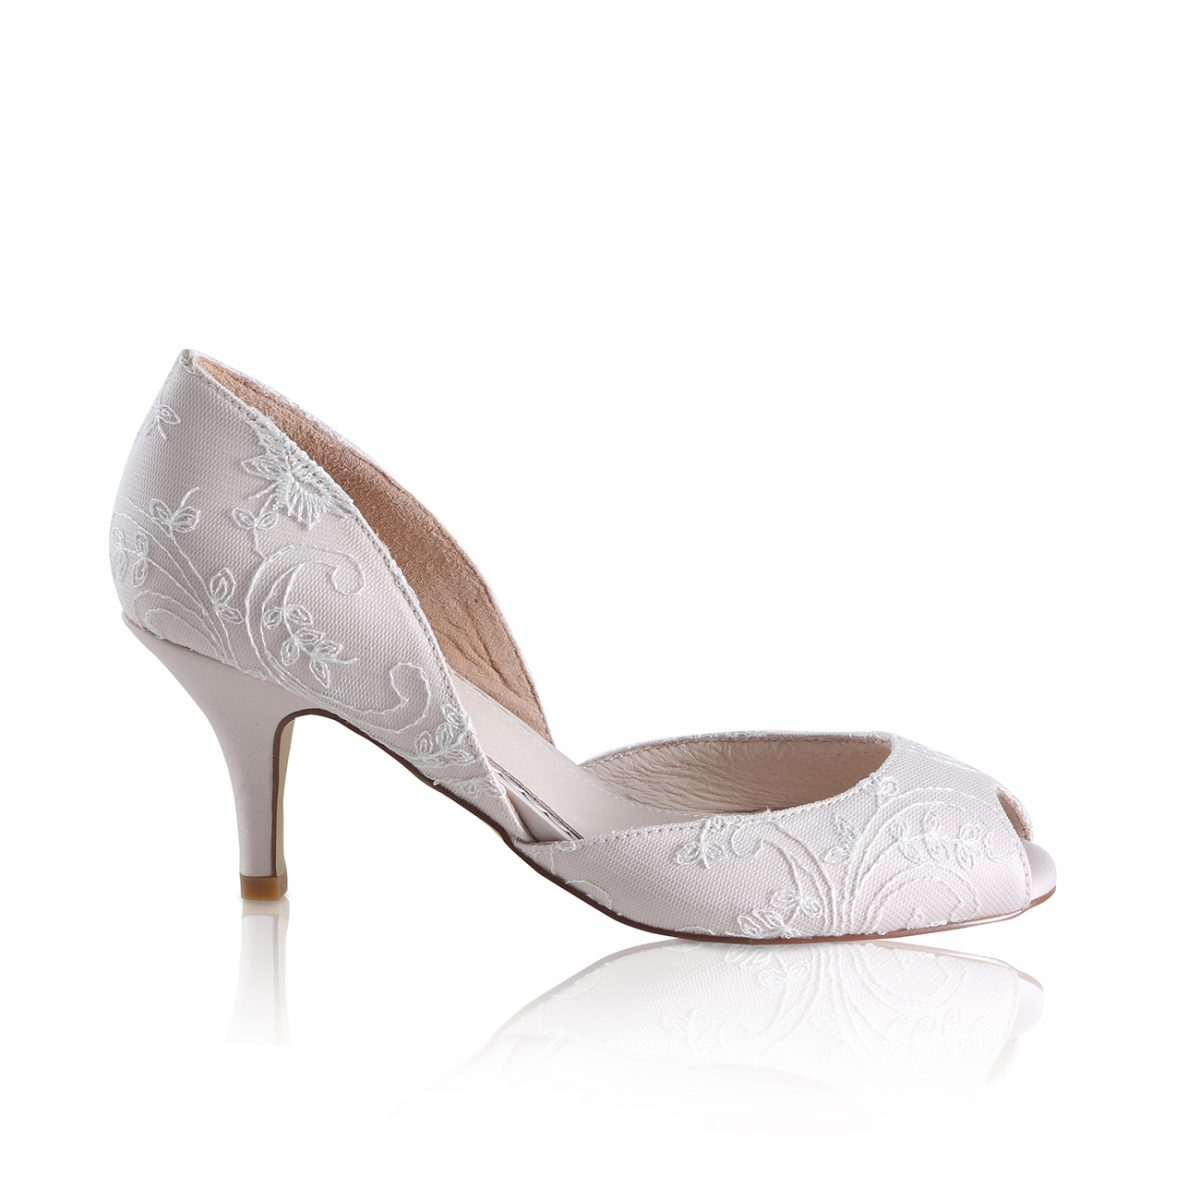 Perfect Bridal Corinne Shoes - Blush